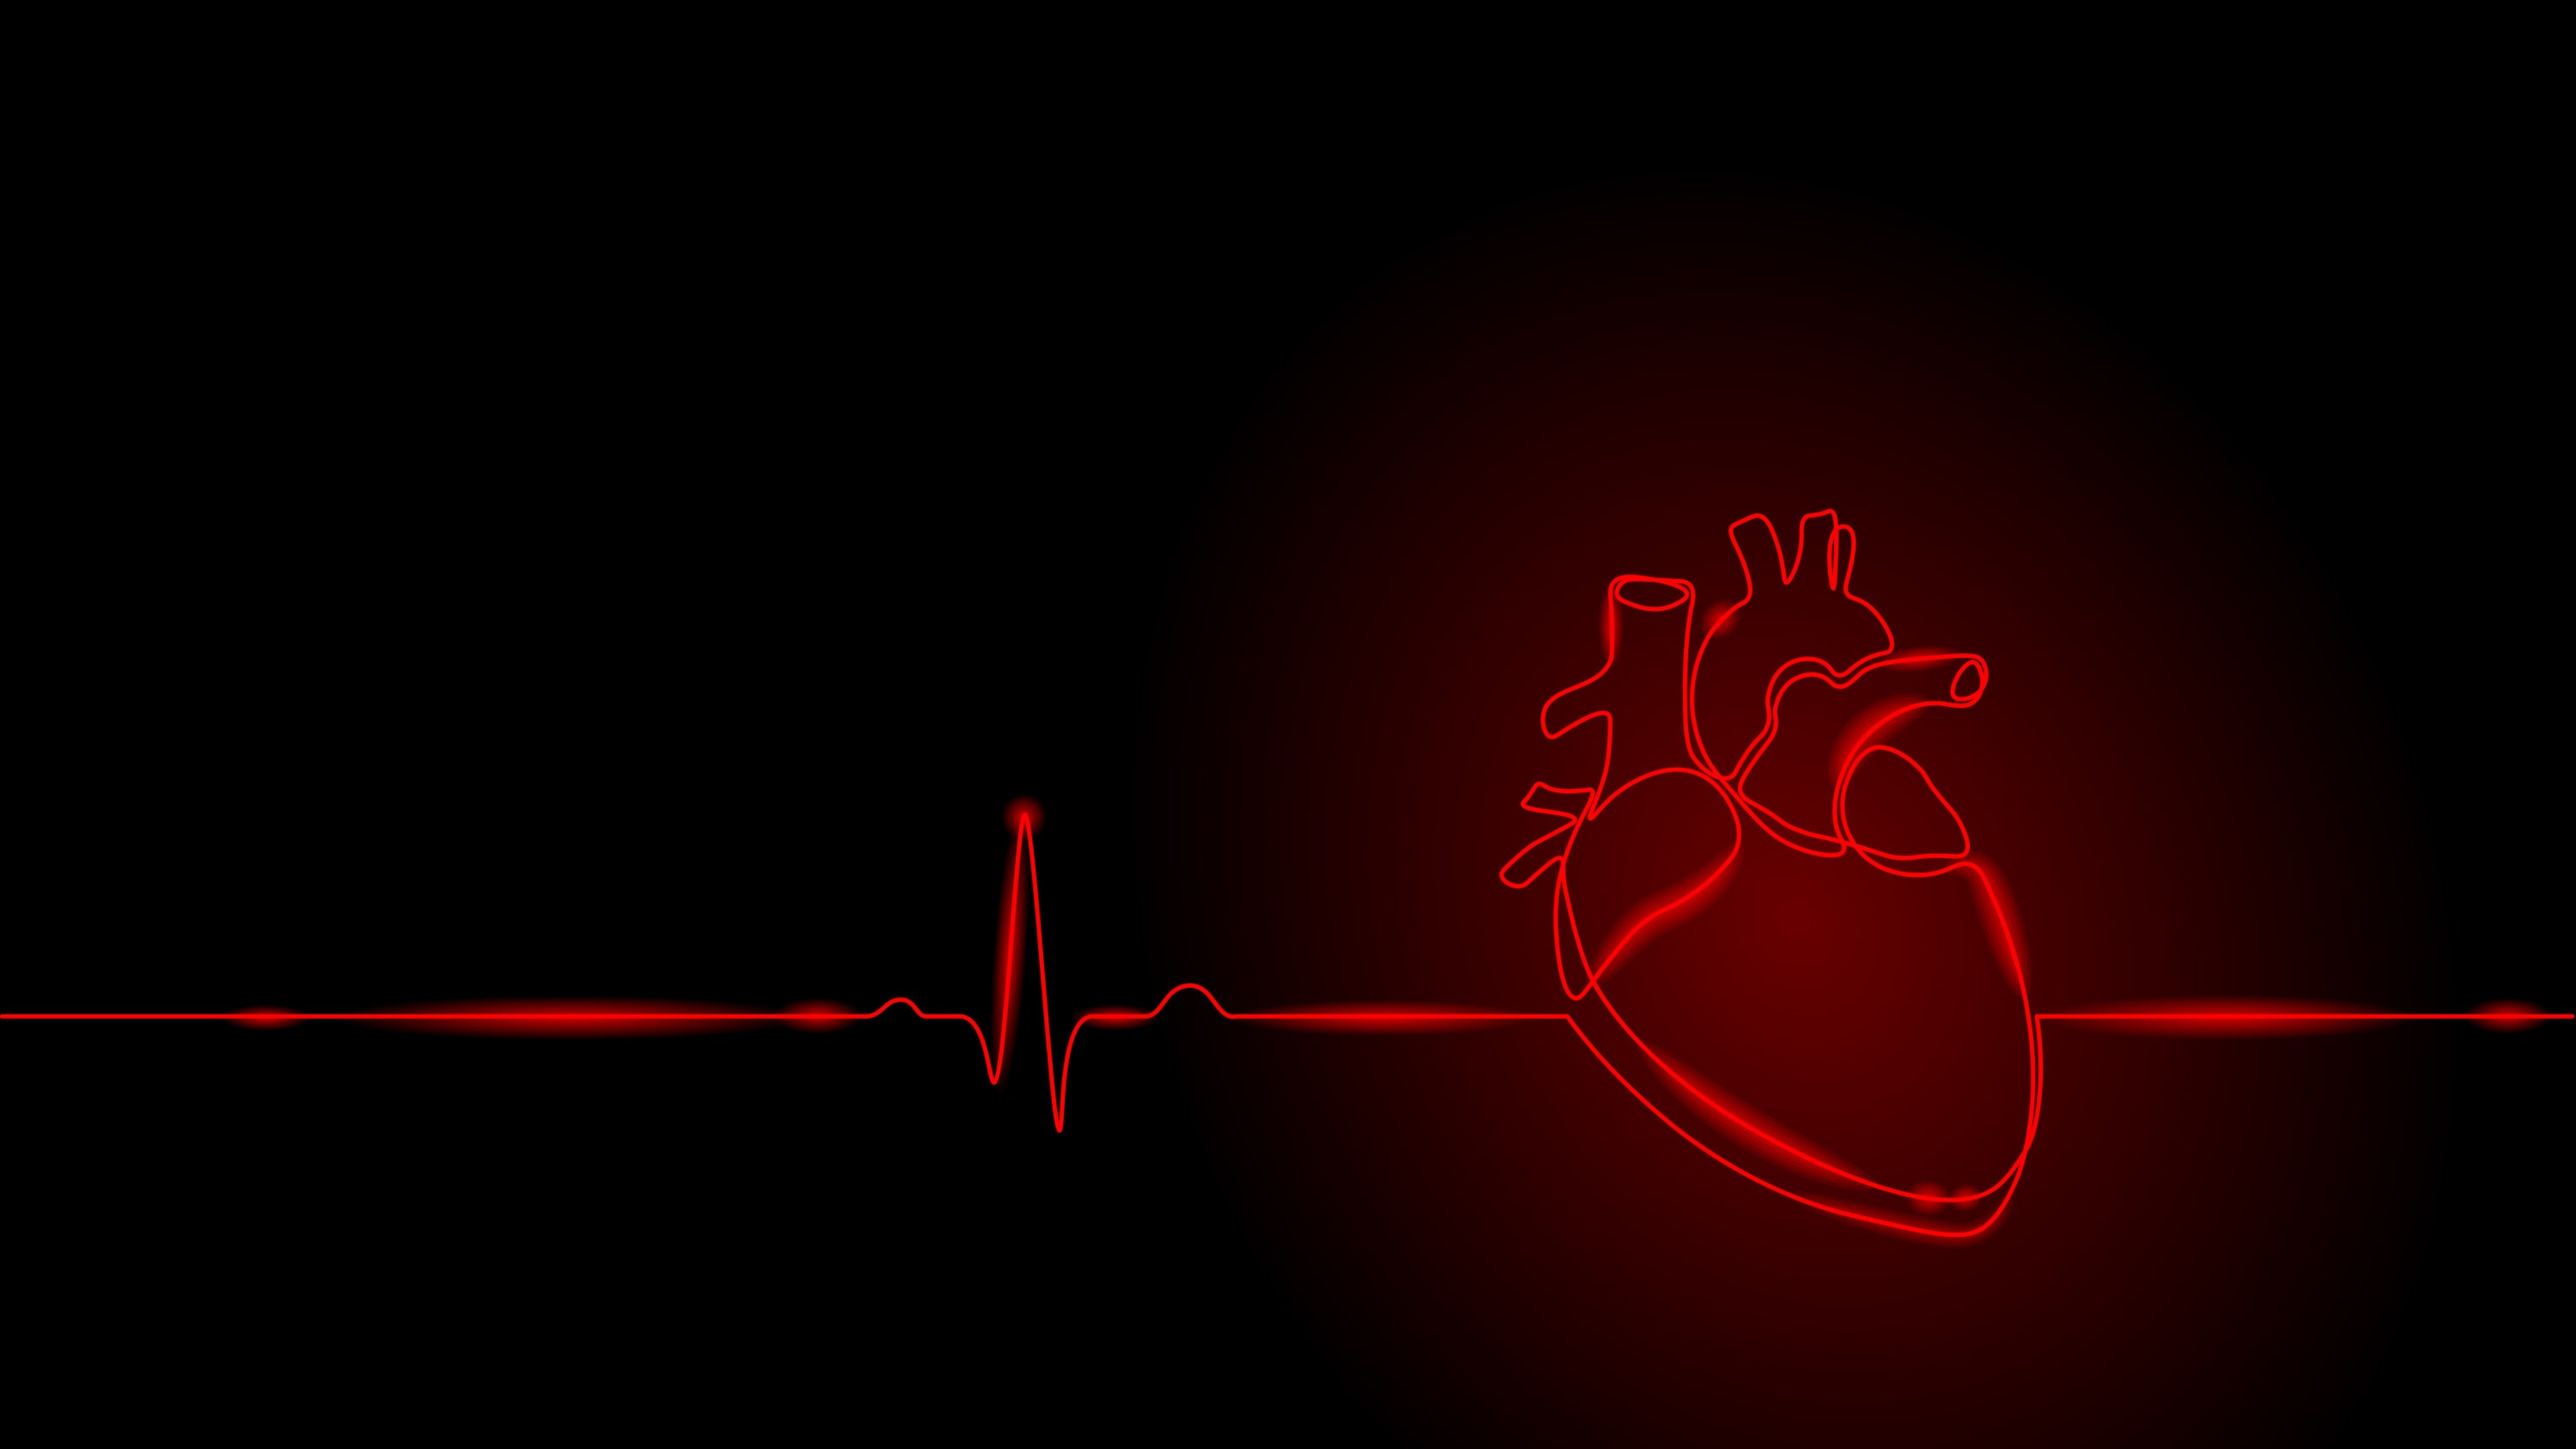 heart pumping, possibly after TAVR procedure